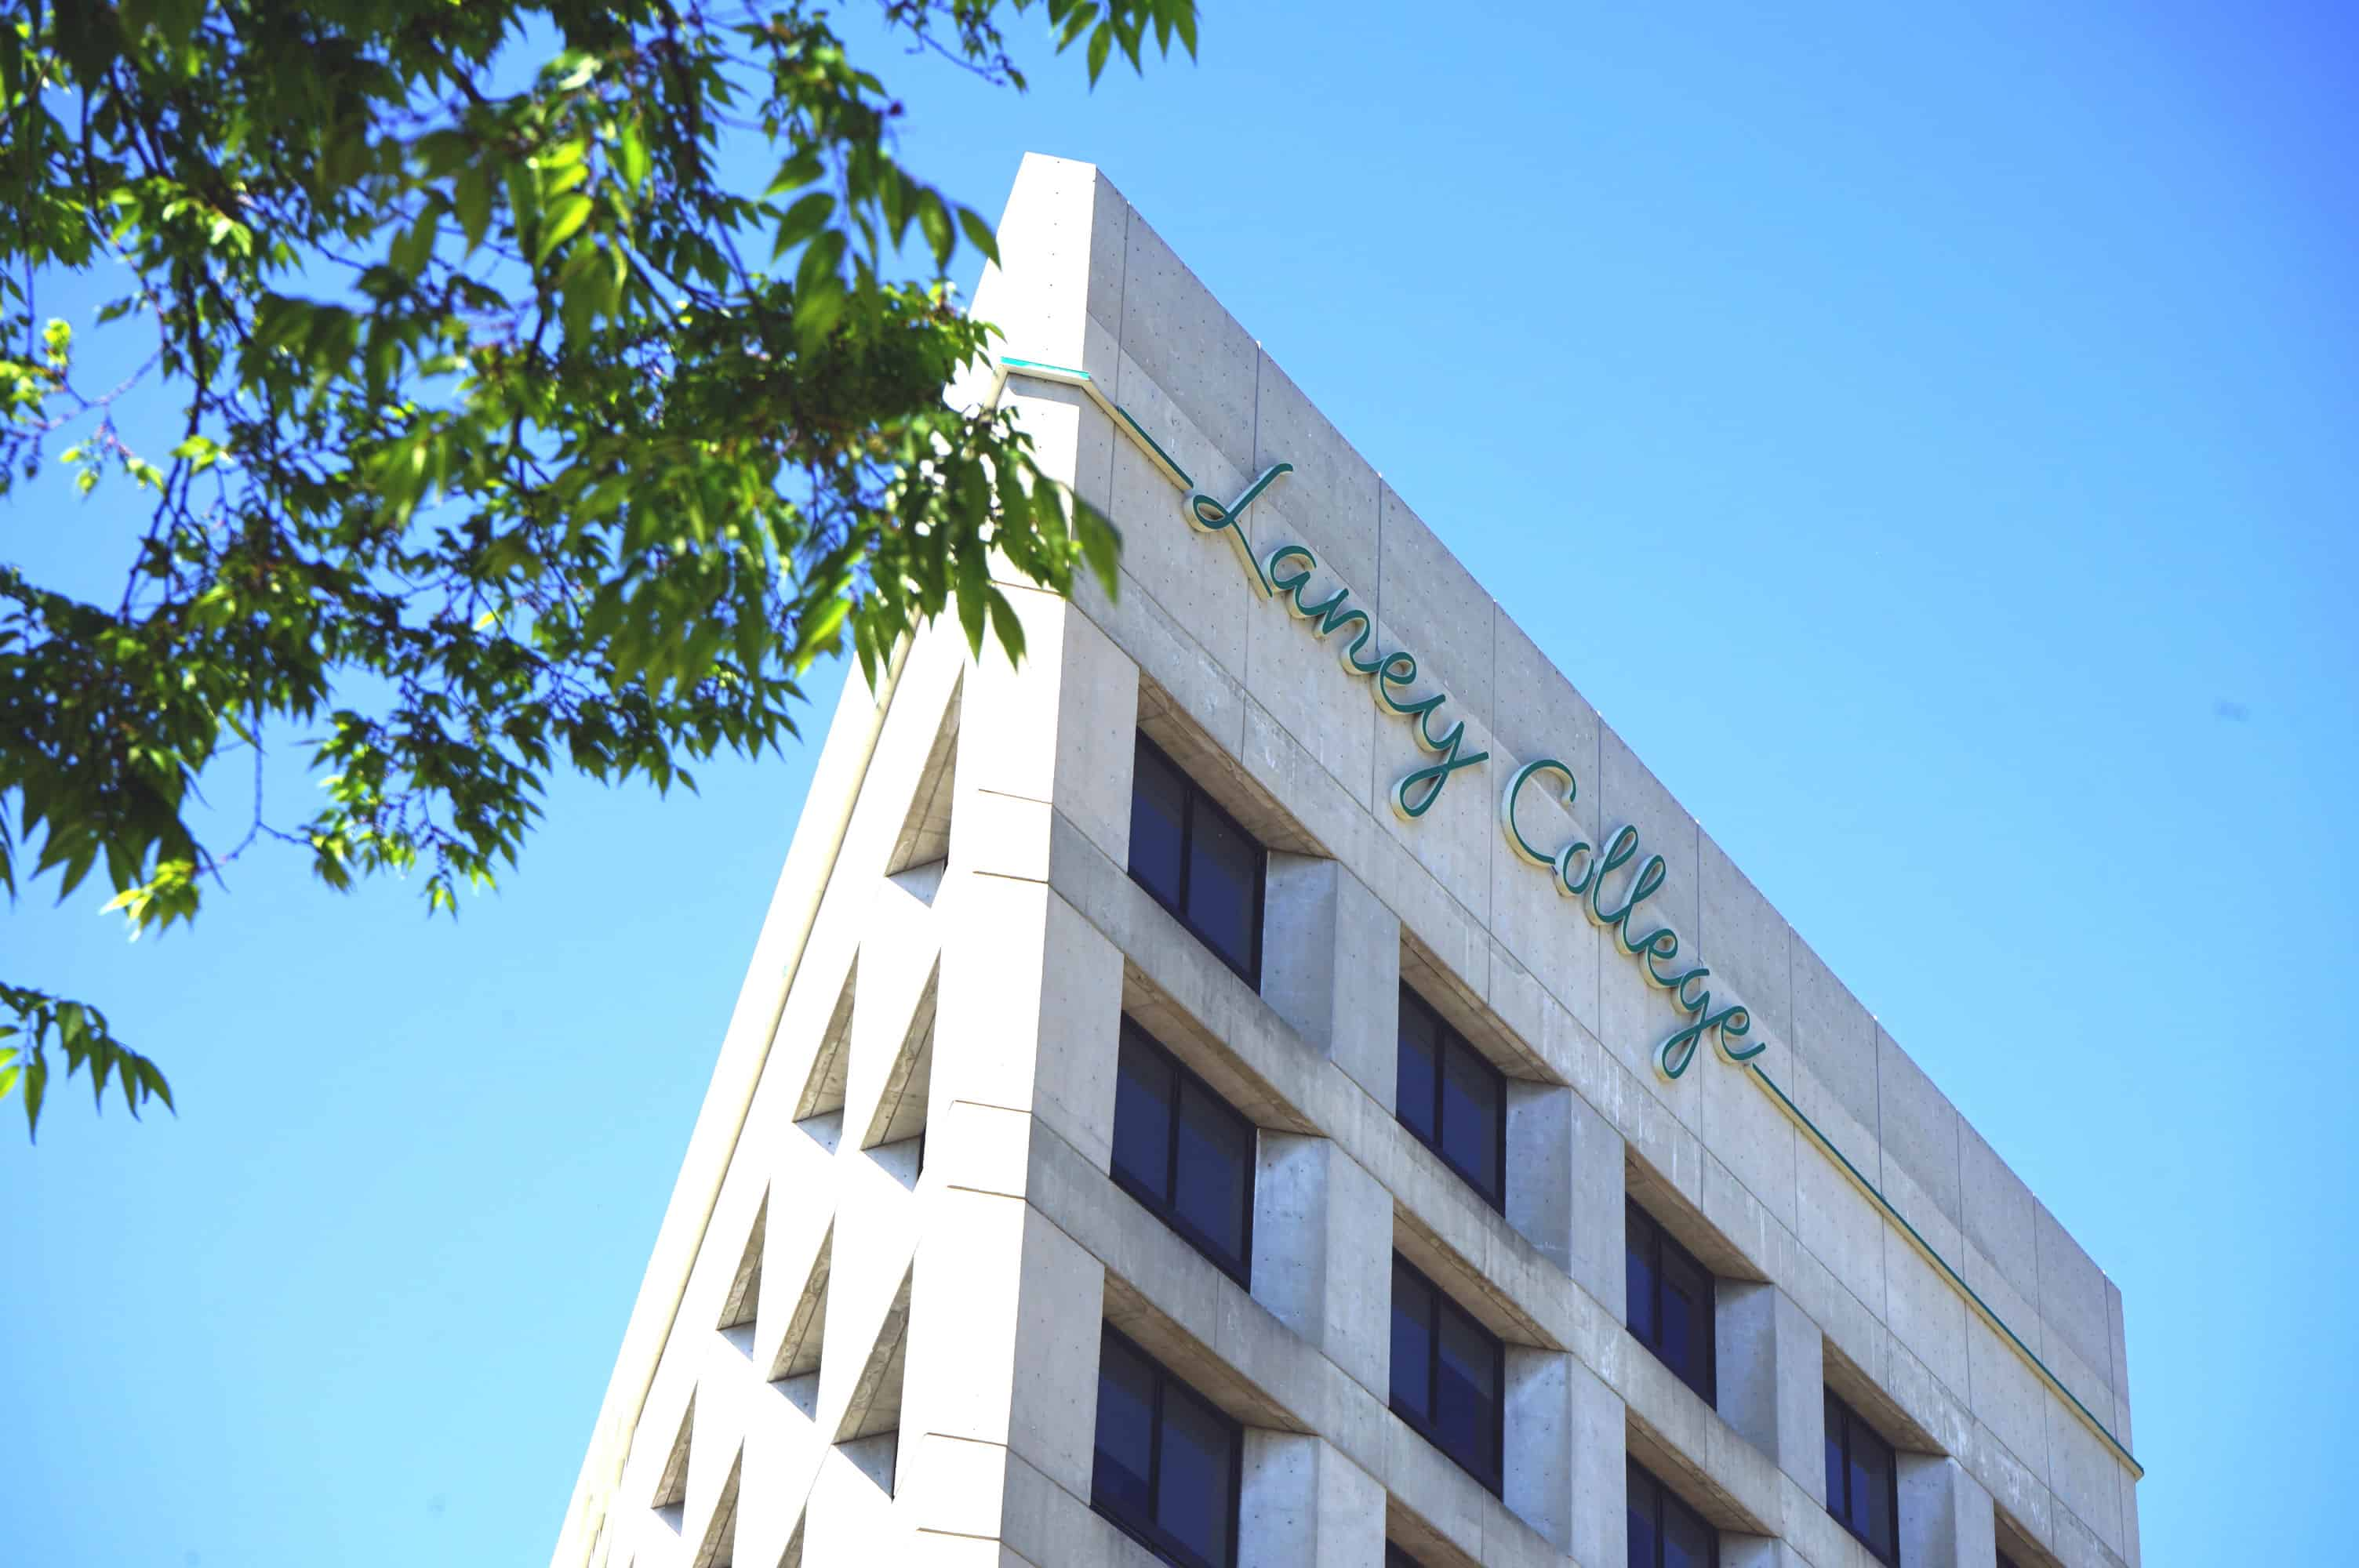 laney college campus tower building